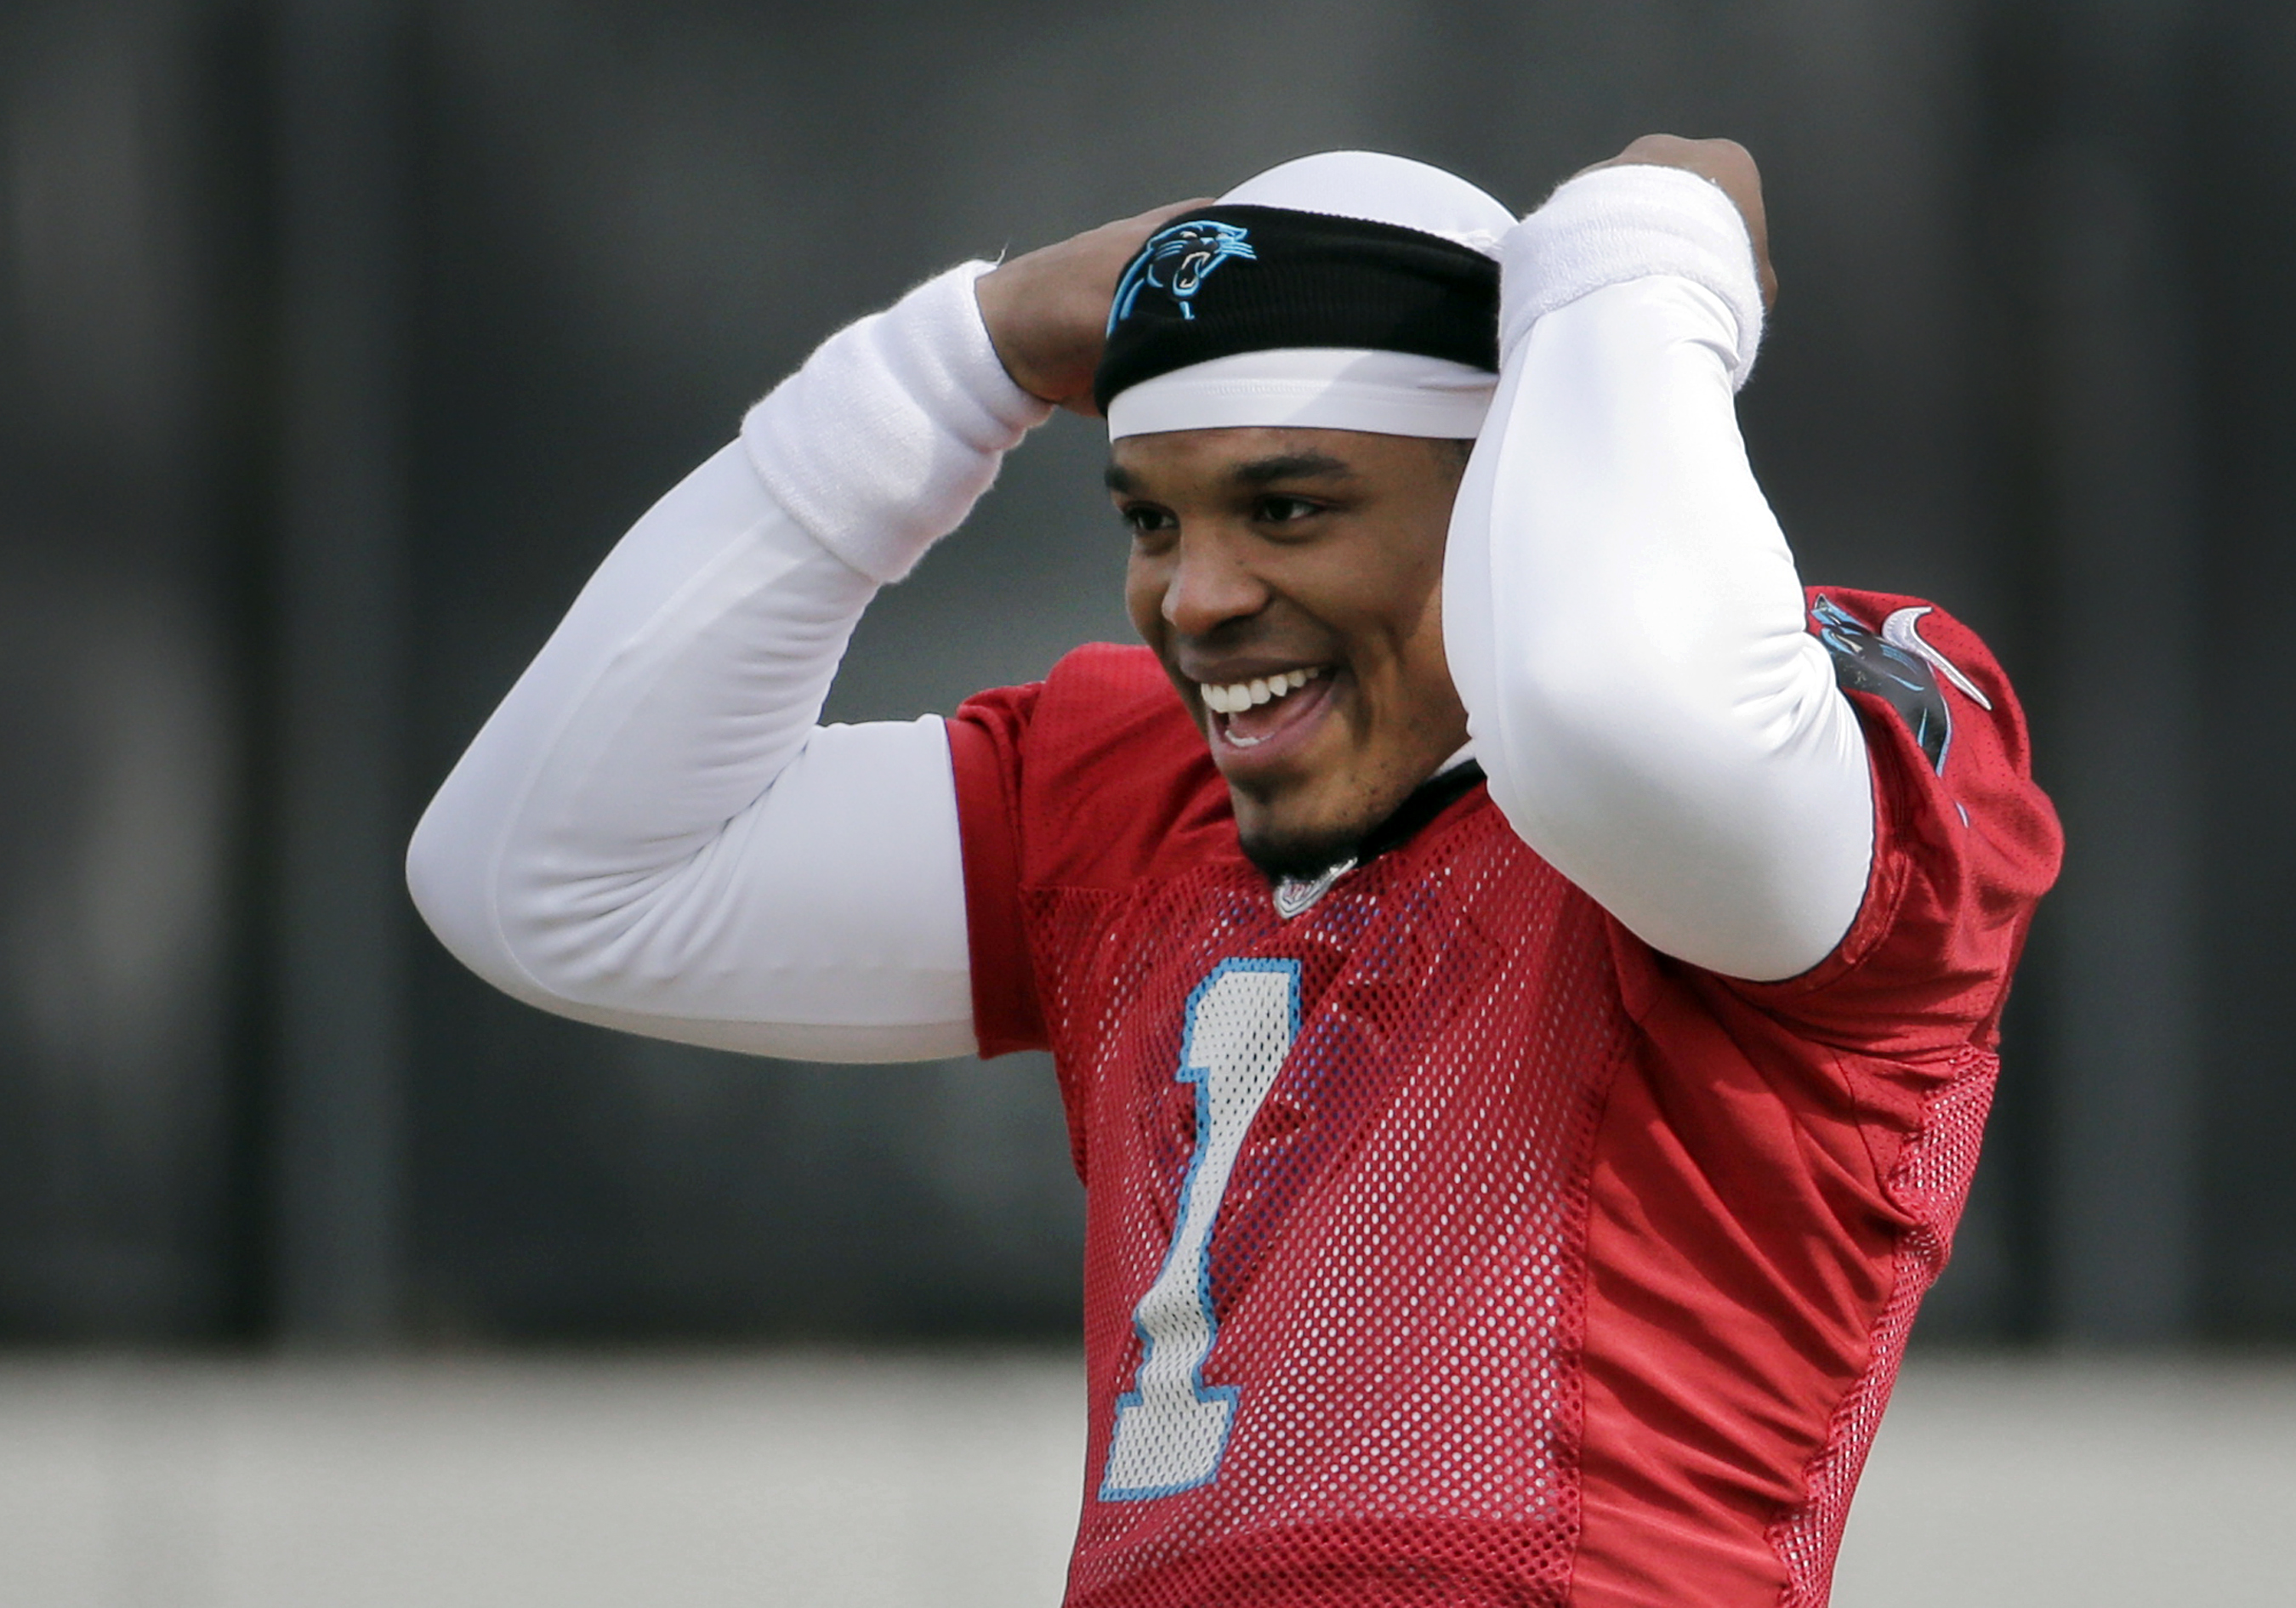 Carolina Panthers quarterback Cam Newton jokes with teammates during practice for the NFL football team in Charlotte, N.C., Wednesday, Jan. 27, 2016.  The Panthers will meet the Denver Broncos in Super Bowl 50 in Santa Clara, Calif., on Feb. 7. (AP Photo/